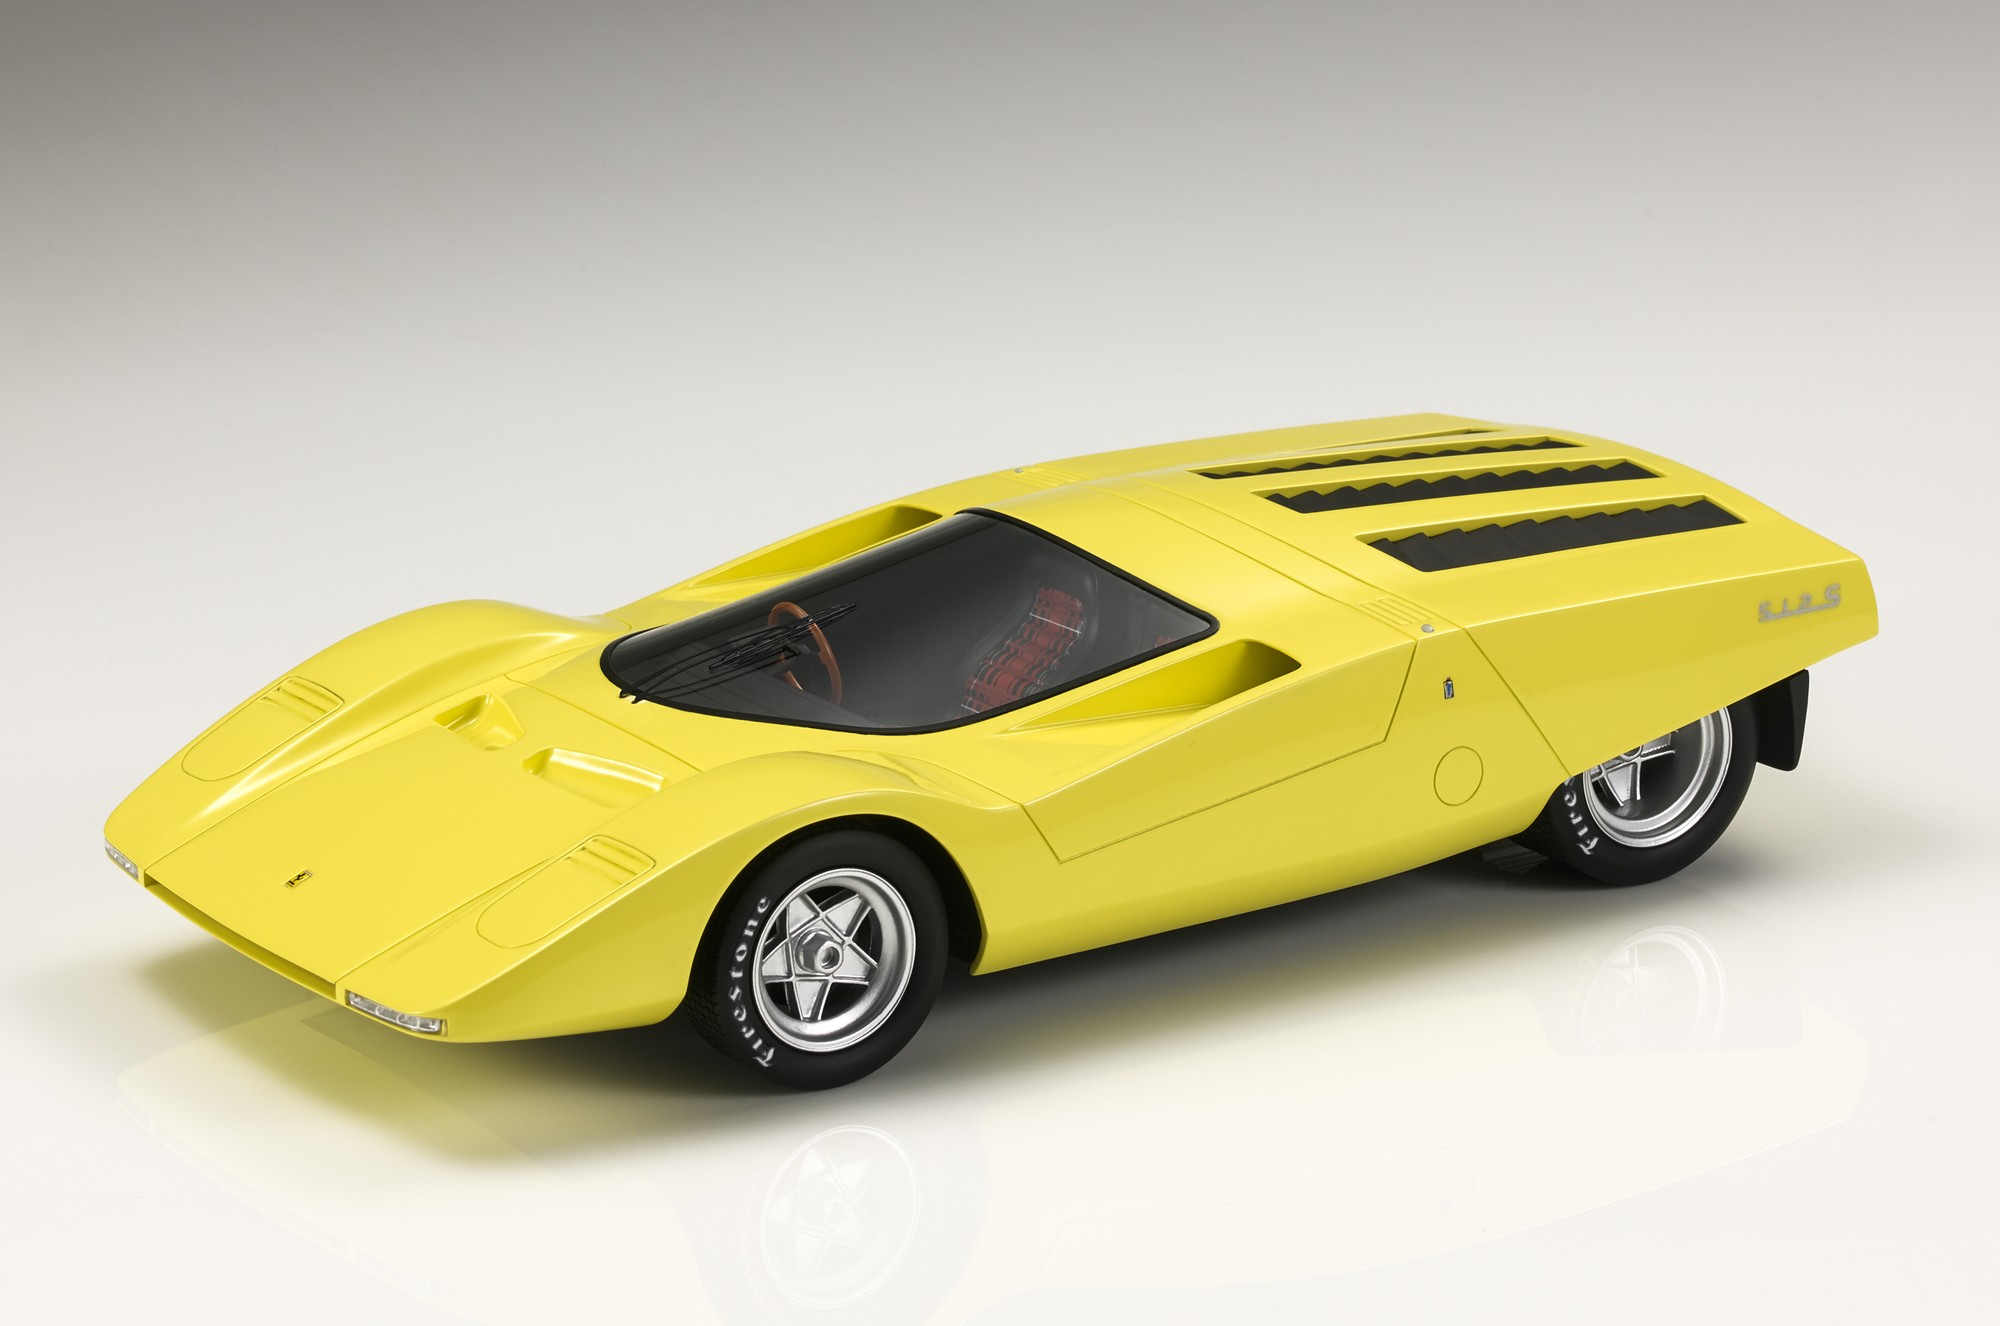 Top Marques Collectibles Ferrari 512s Berlinetta Concept 1 18 Yellow Top85a